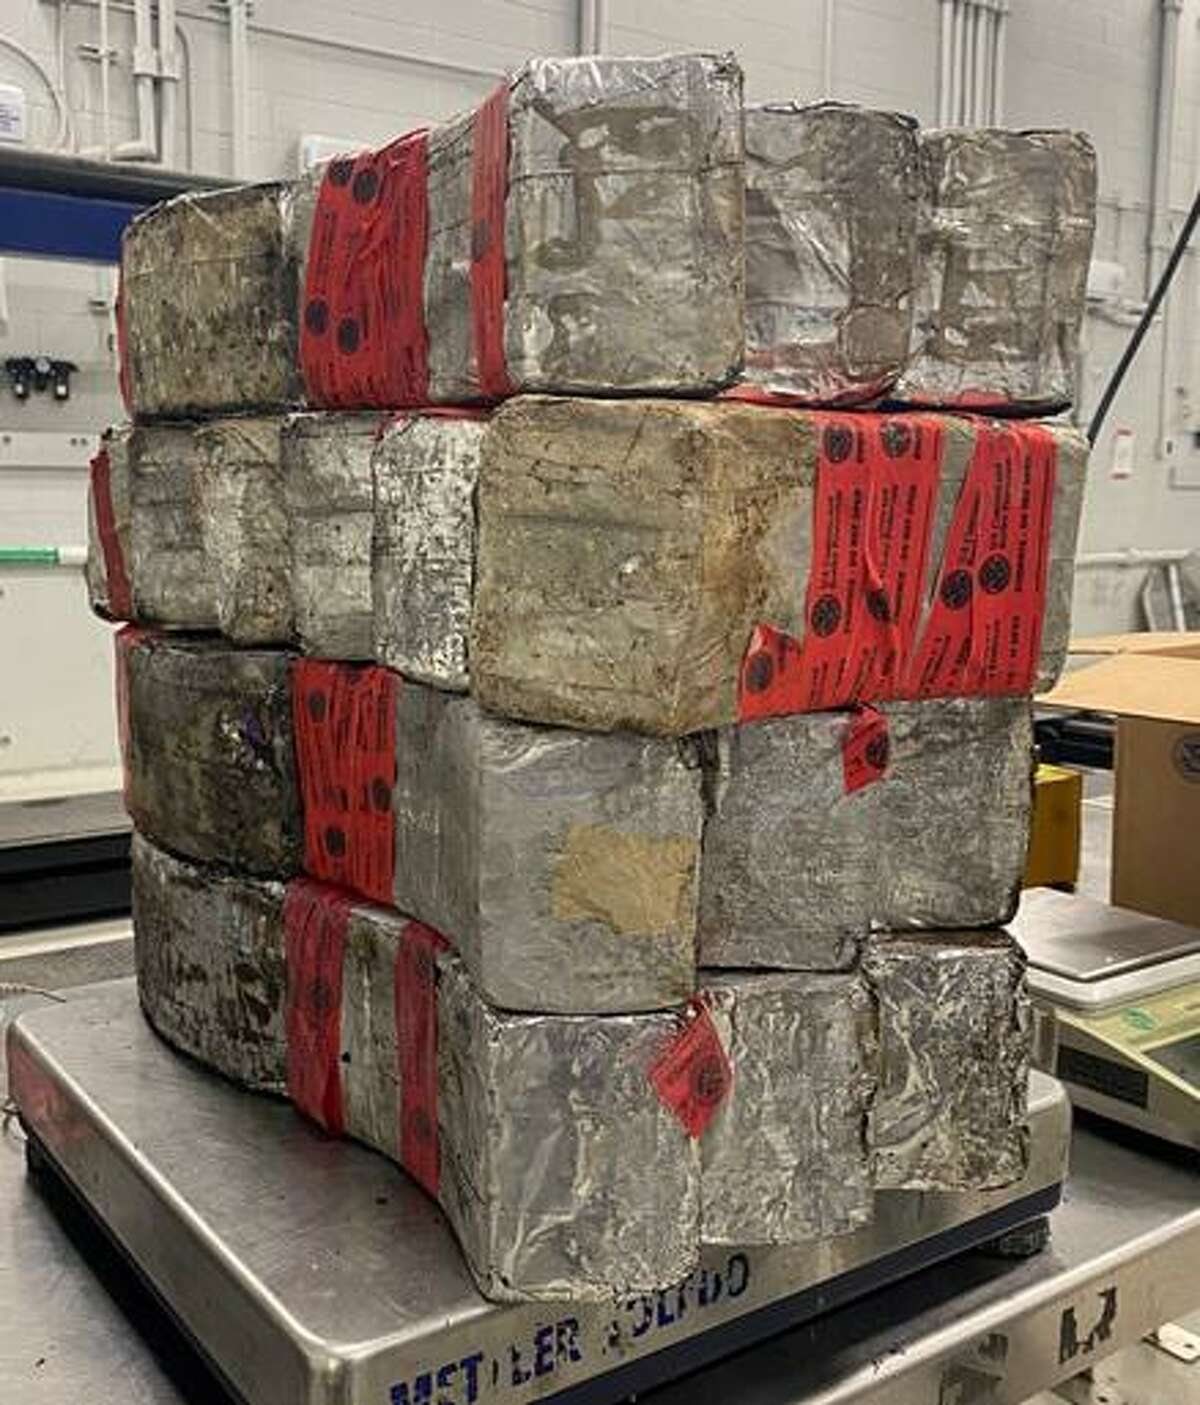 U.S. Customs and Border Protection officers said they seized these 132.36 pounds of meth valued at about $2.6 million at the Juarez-Lincoln International Bridge. One person has been indicted in connection with the case.